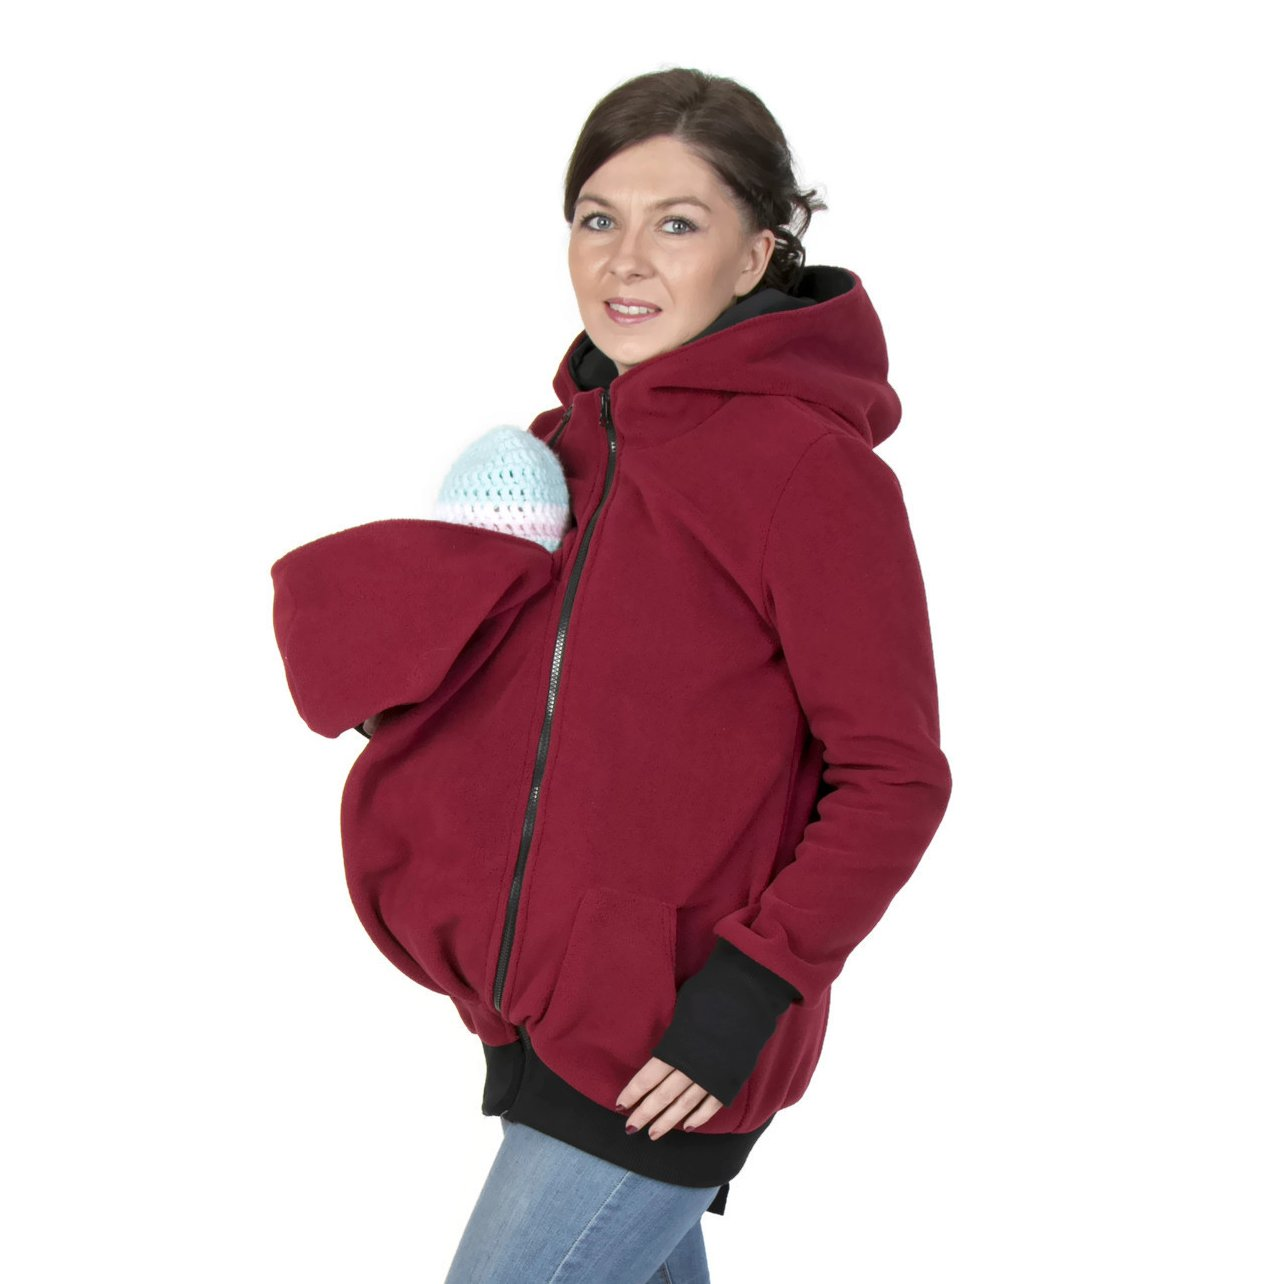 3in1 Maternity Polar Warm Fleece Hoodie / Pullover for Two / for Baby Carriers / Baby Carrying Wearing (L/XL US 10/12)